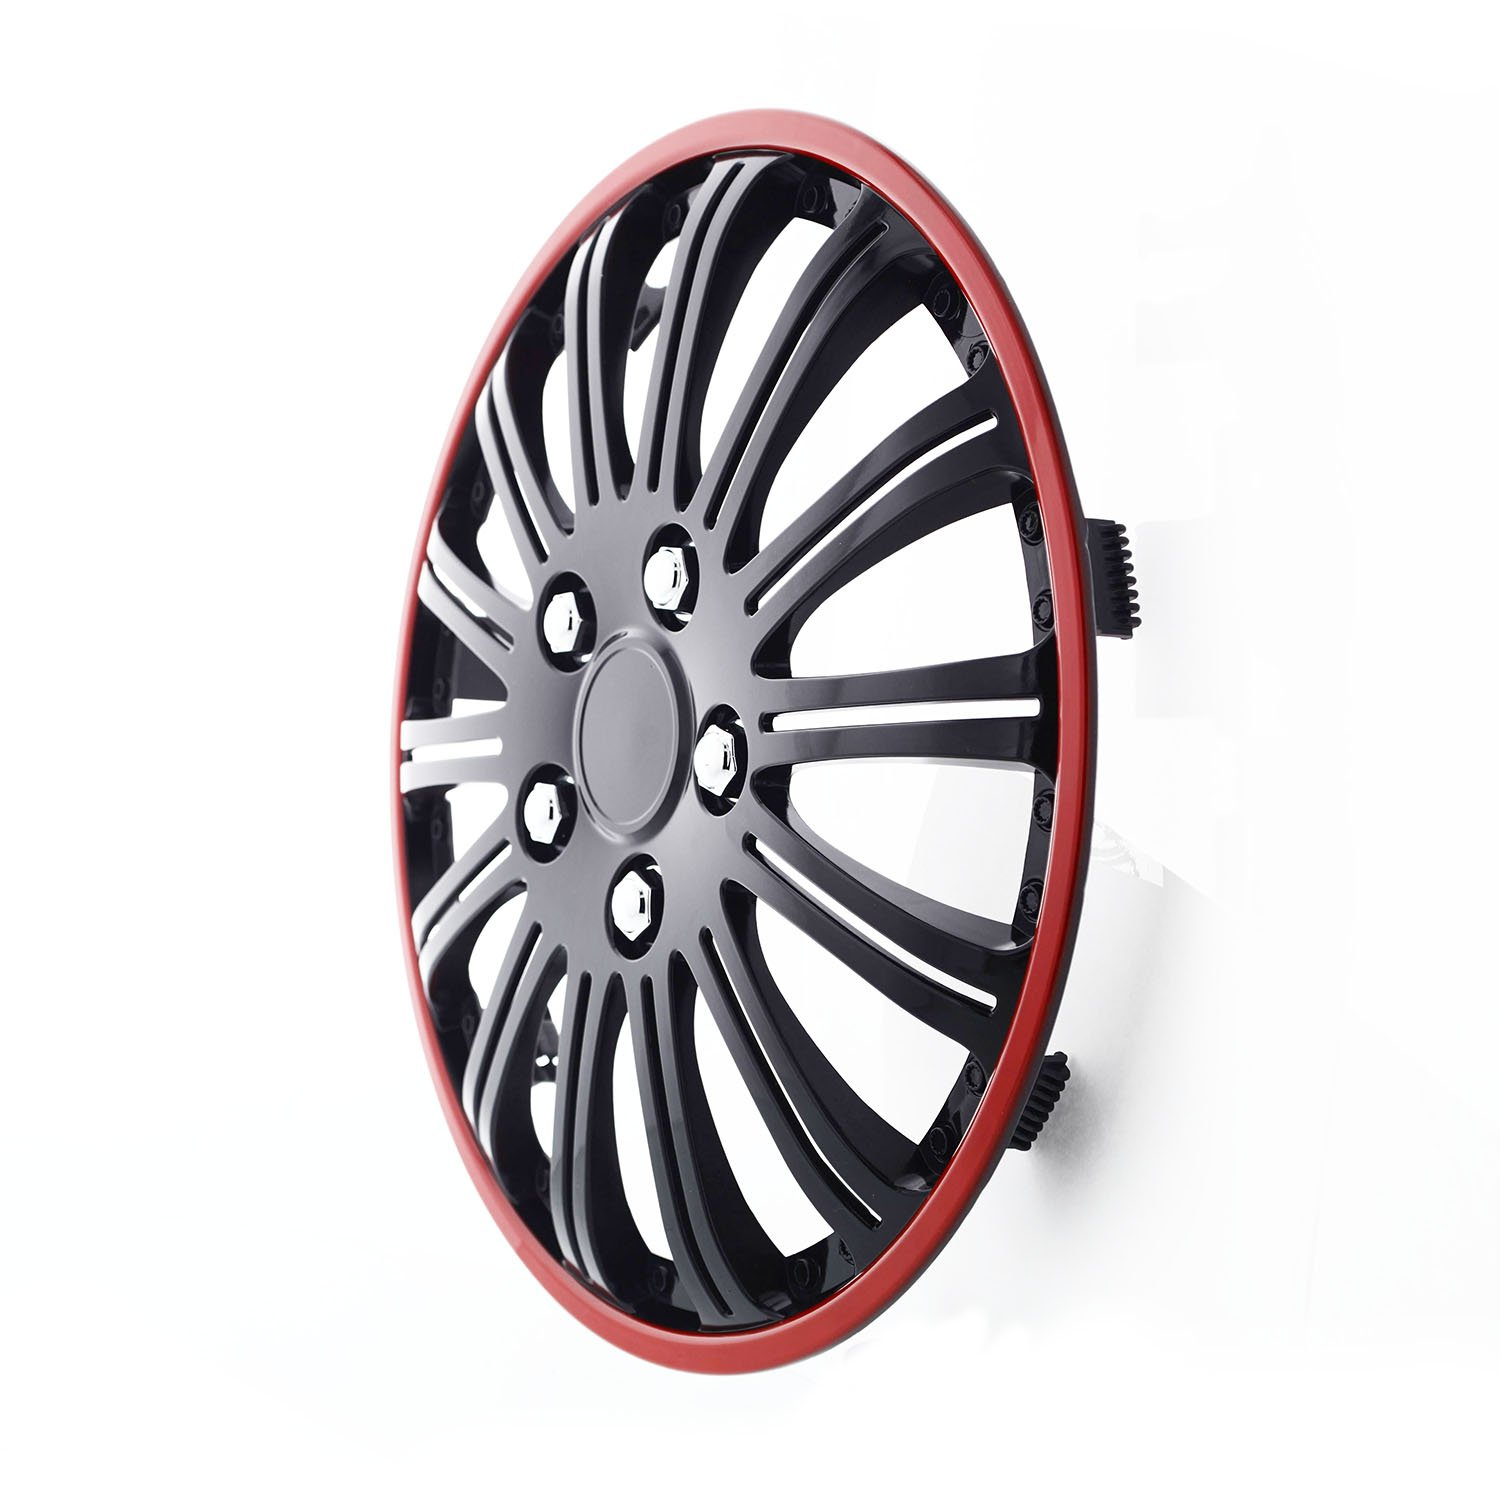 Pilot Automotive WH527-15RE-BX Cobra Black Chrome 15 Wheel Cover with Red Accent, Set of 4